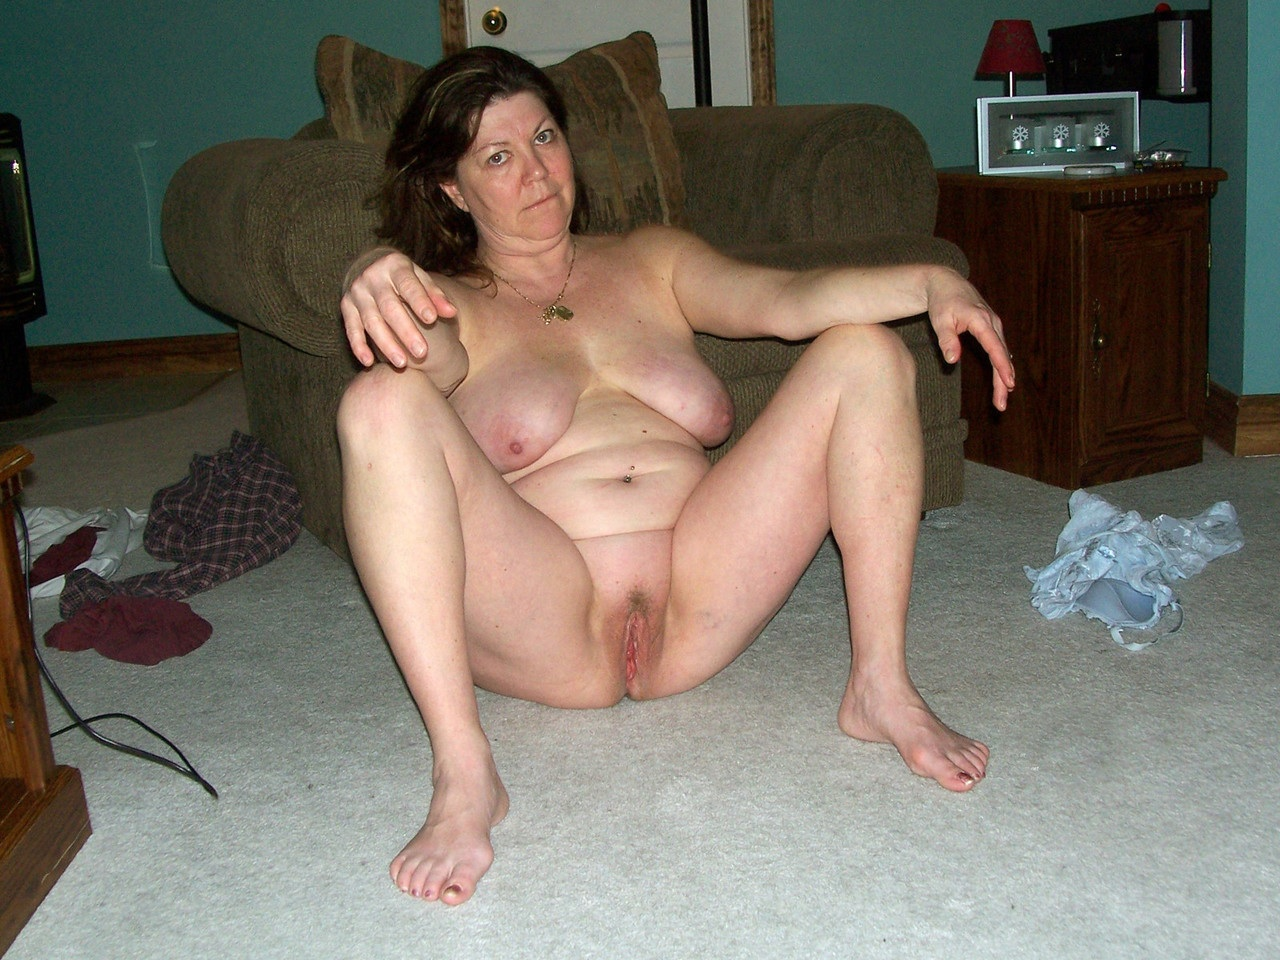 Mature pussy pics gallery